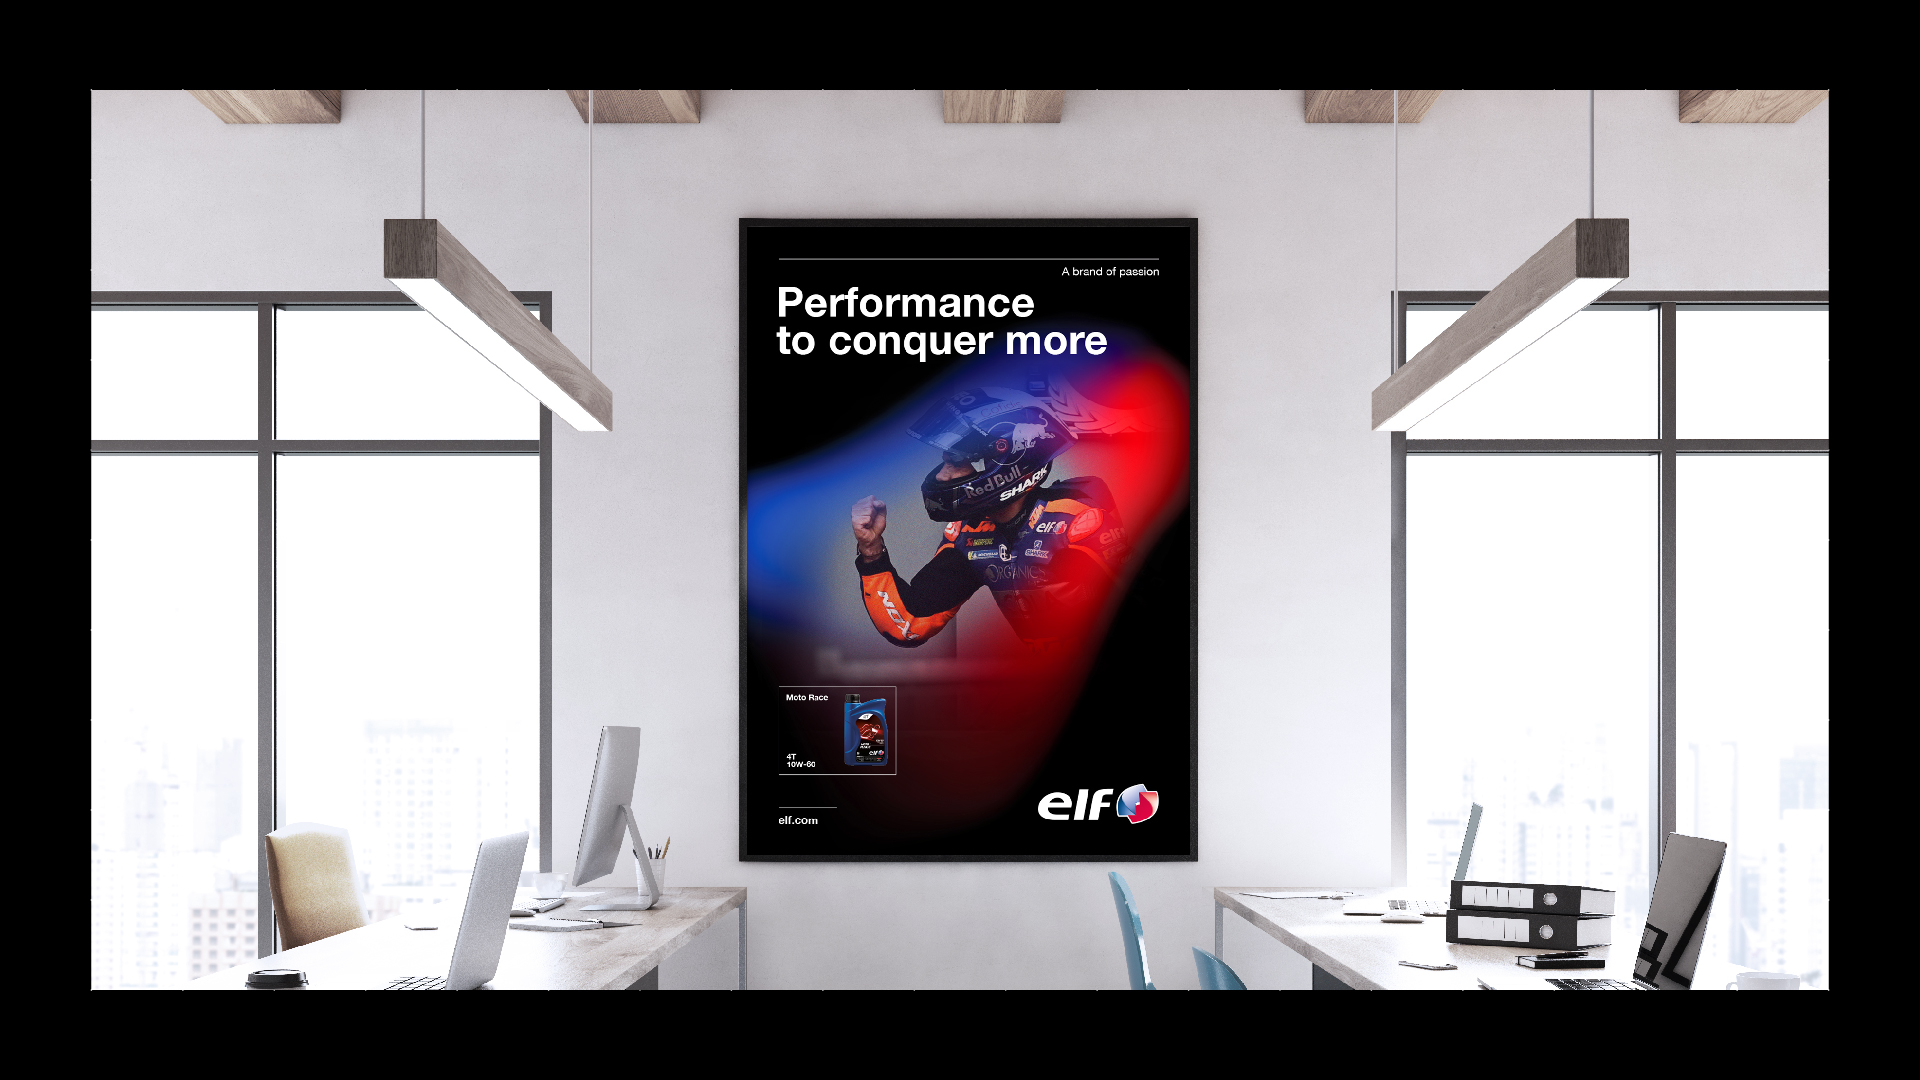 Performance to conquer more